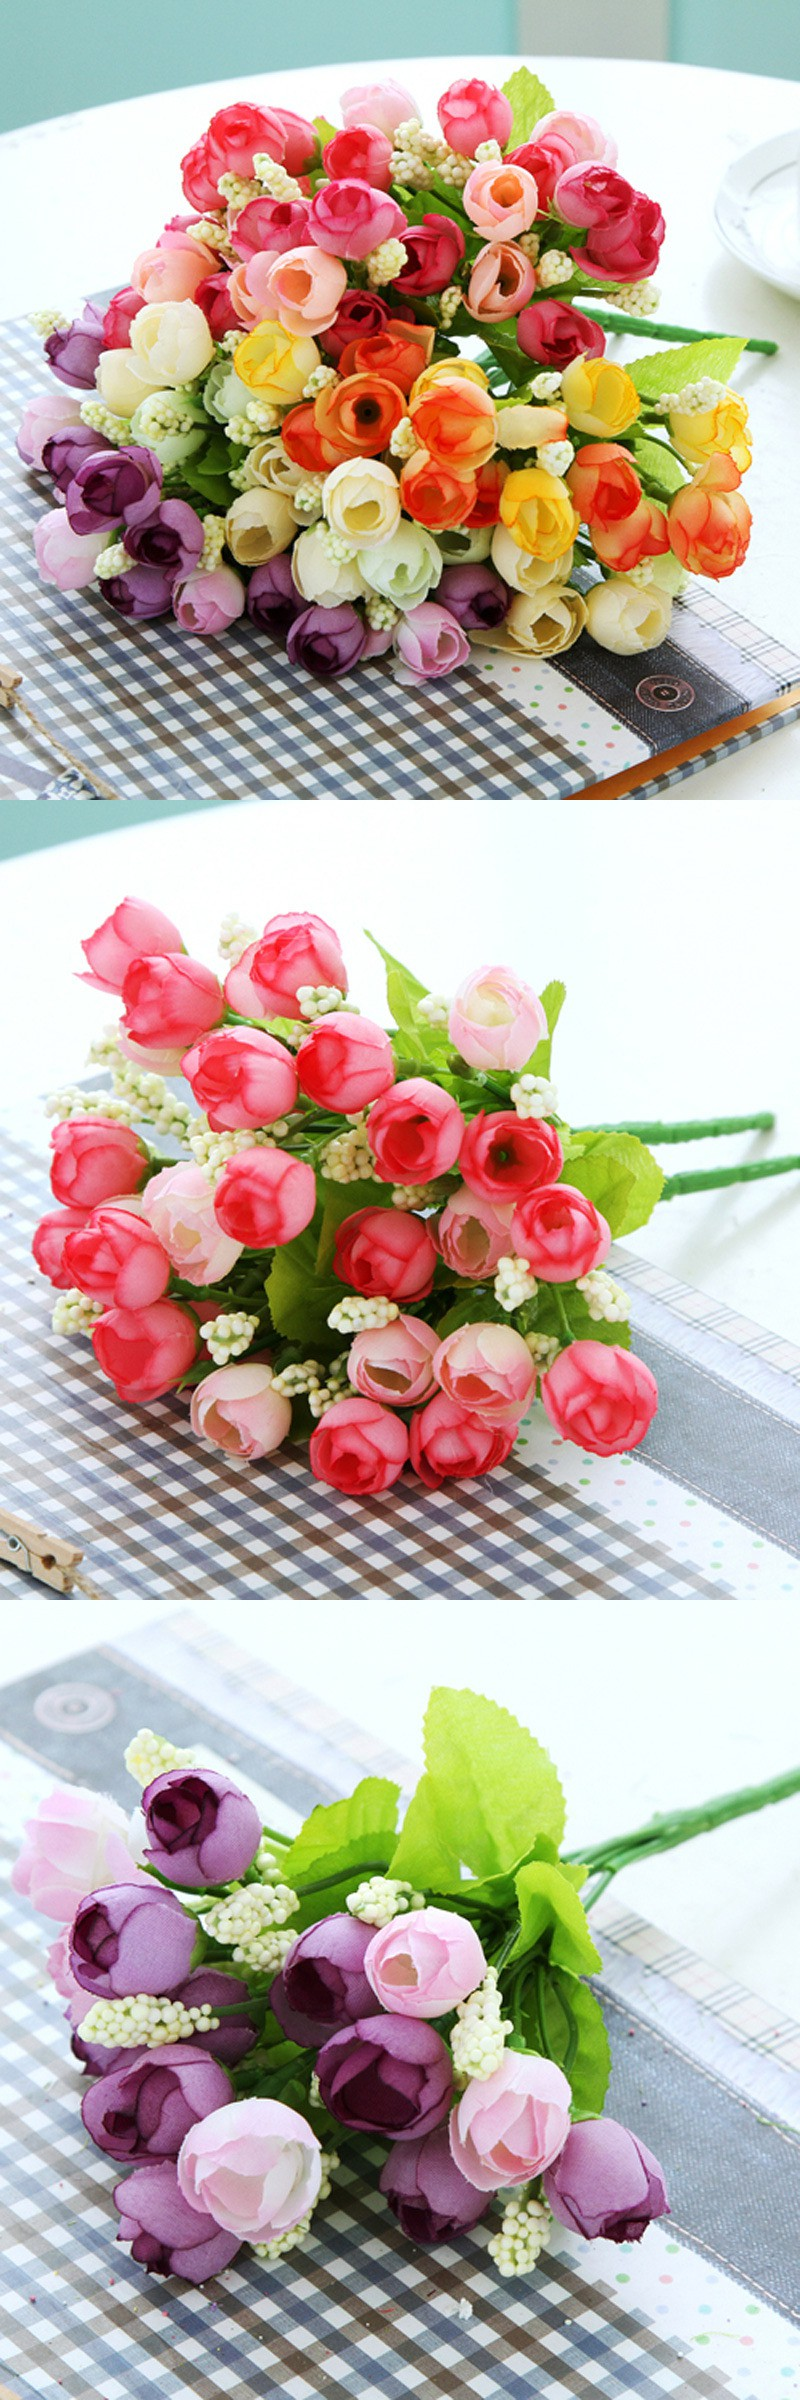 Tea Rose Bud Spring Roses Silk Artificial Flowers 5 Branches for Home Decor Wedding Love Decorative Flowers Floral Ornaments $1.89